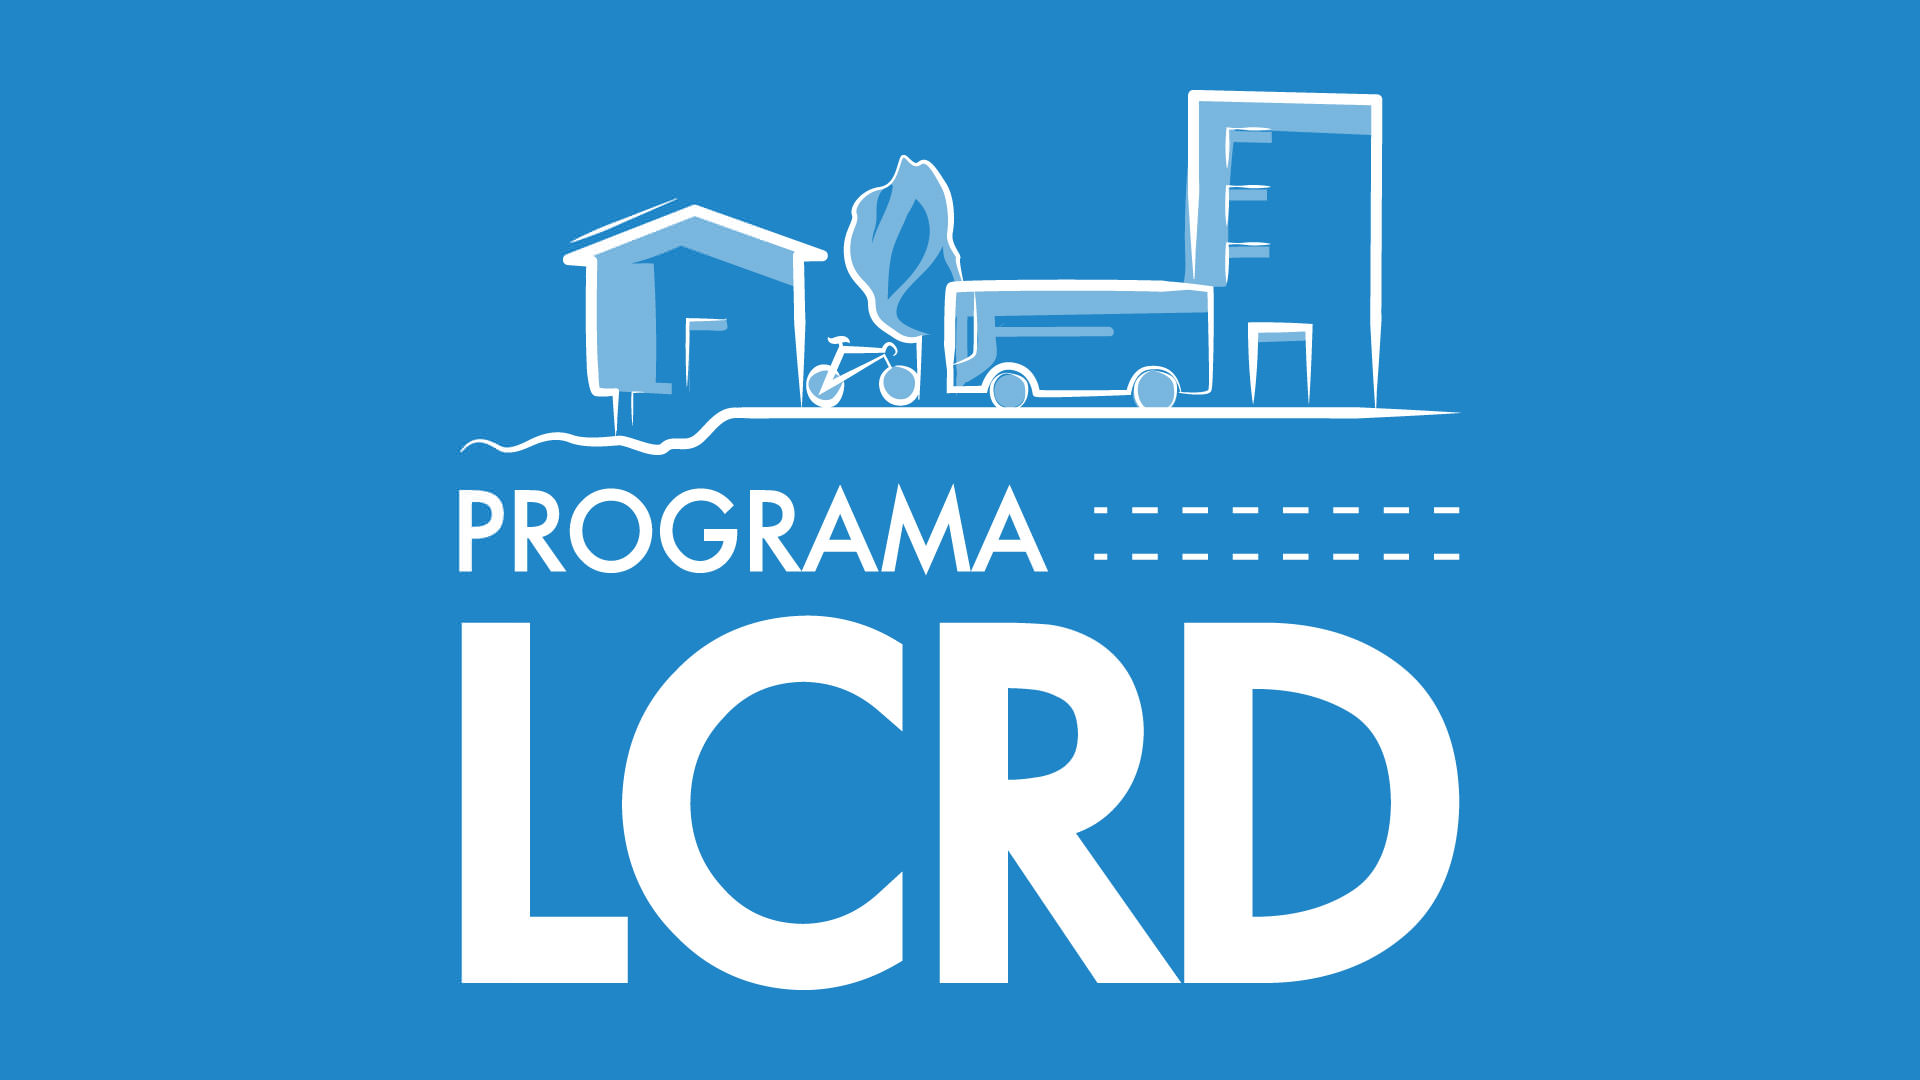 LCRD